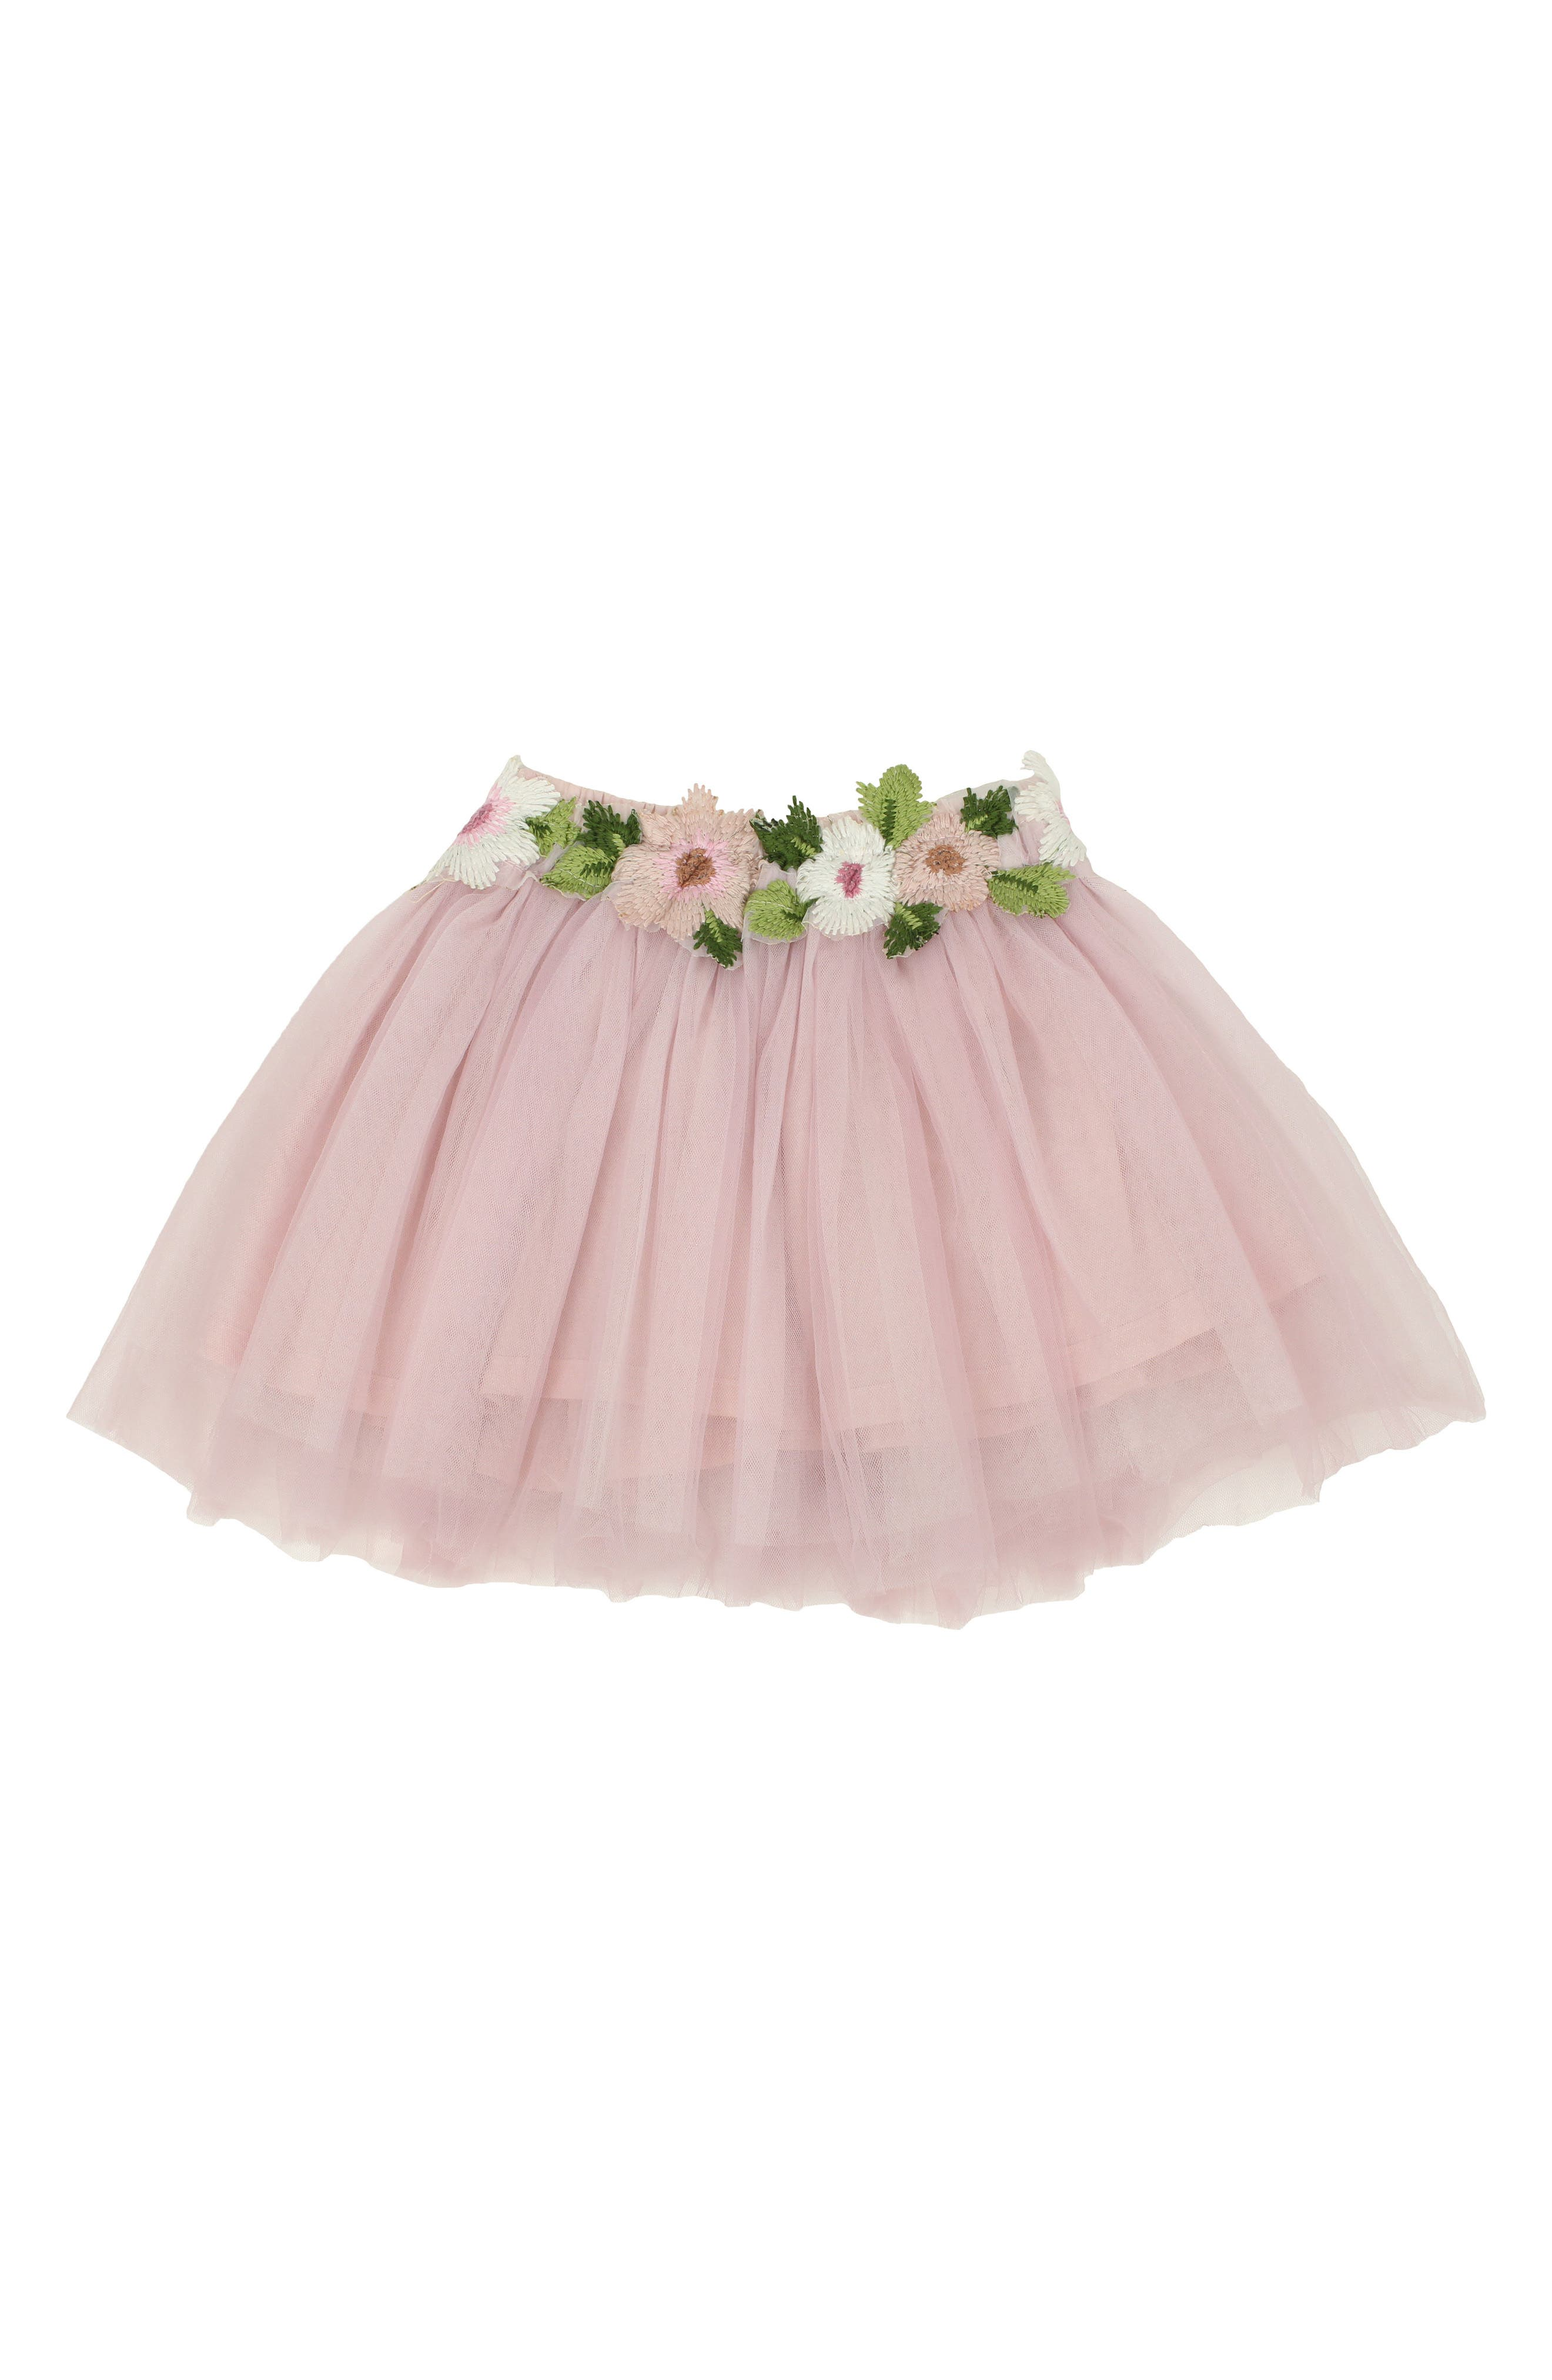 Popatu Floral Embellished Tulle Skirt (Toddler Girls & Little Girls)